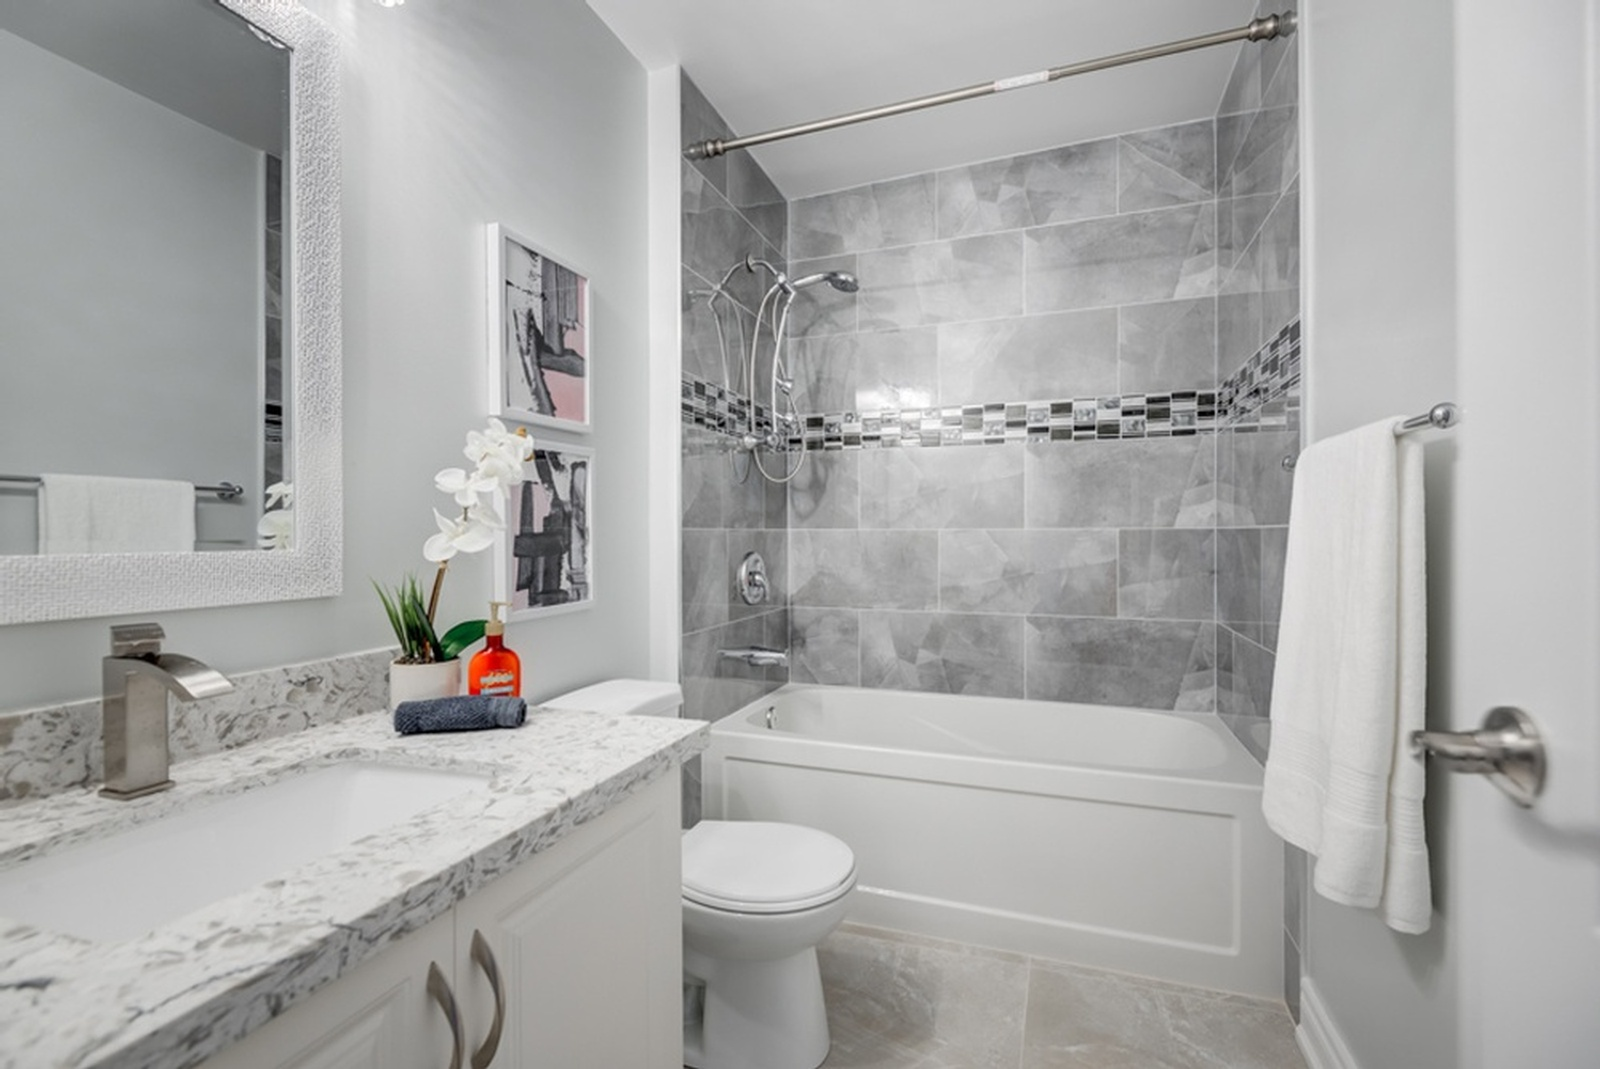 Master Bathroom Staging by Home Stager East York at Impressive Staging